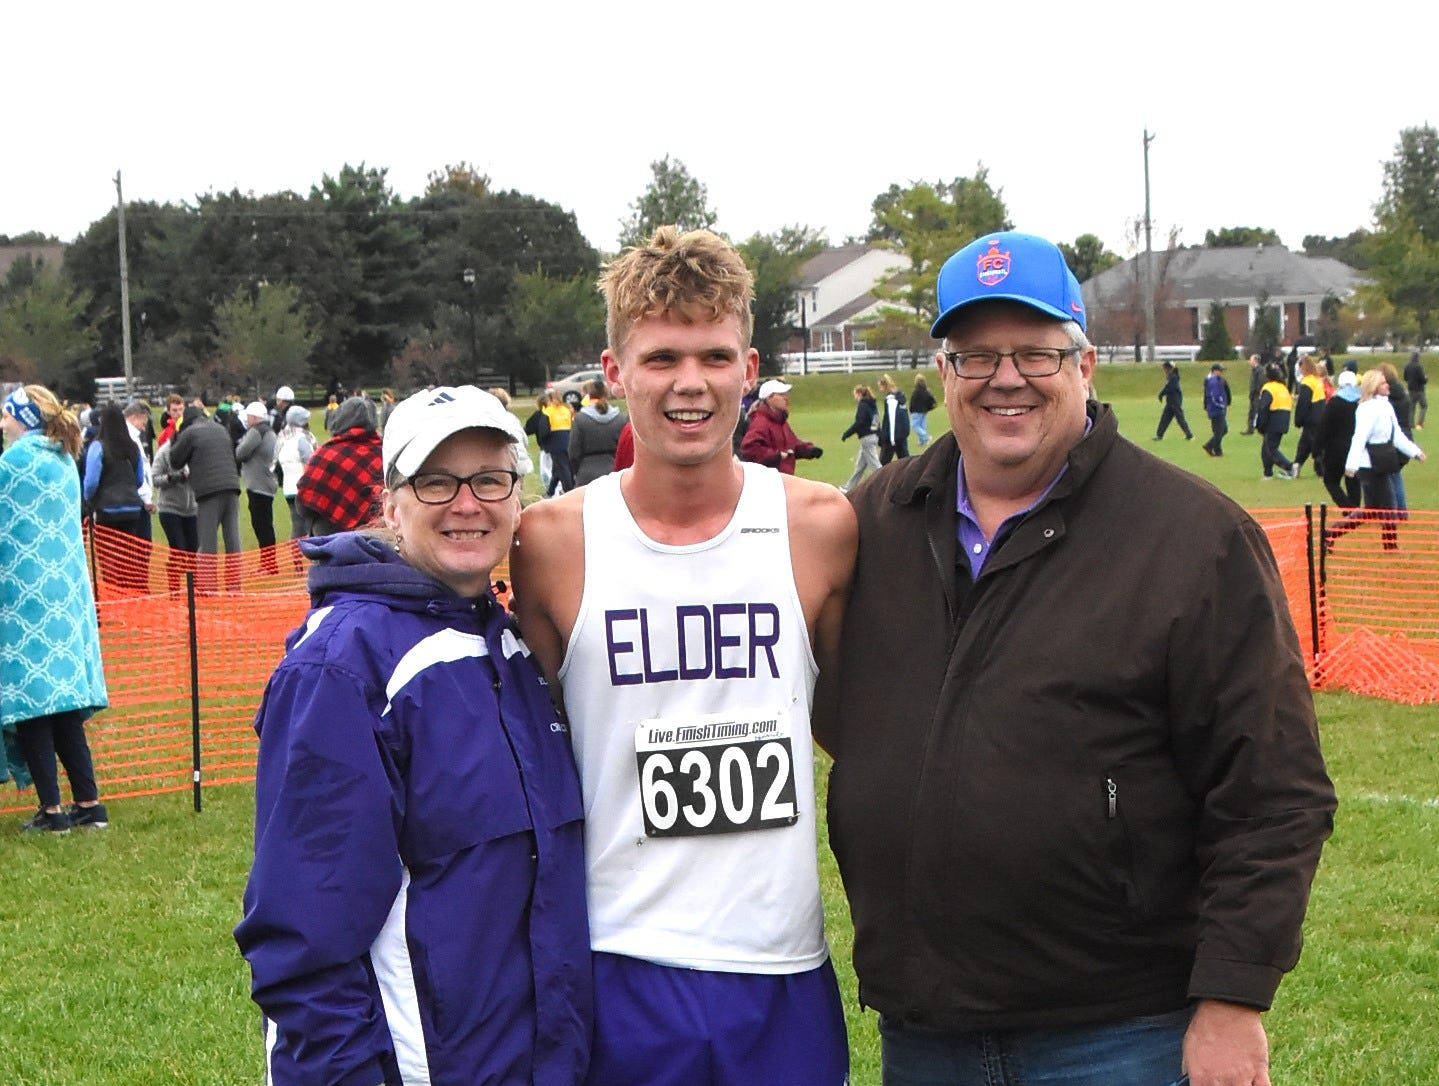 Together with his parents, Jack Dowling celebrates his strong run at the 2018 GCL/GGCL Cross Country Championships, October 13, 2018.